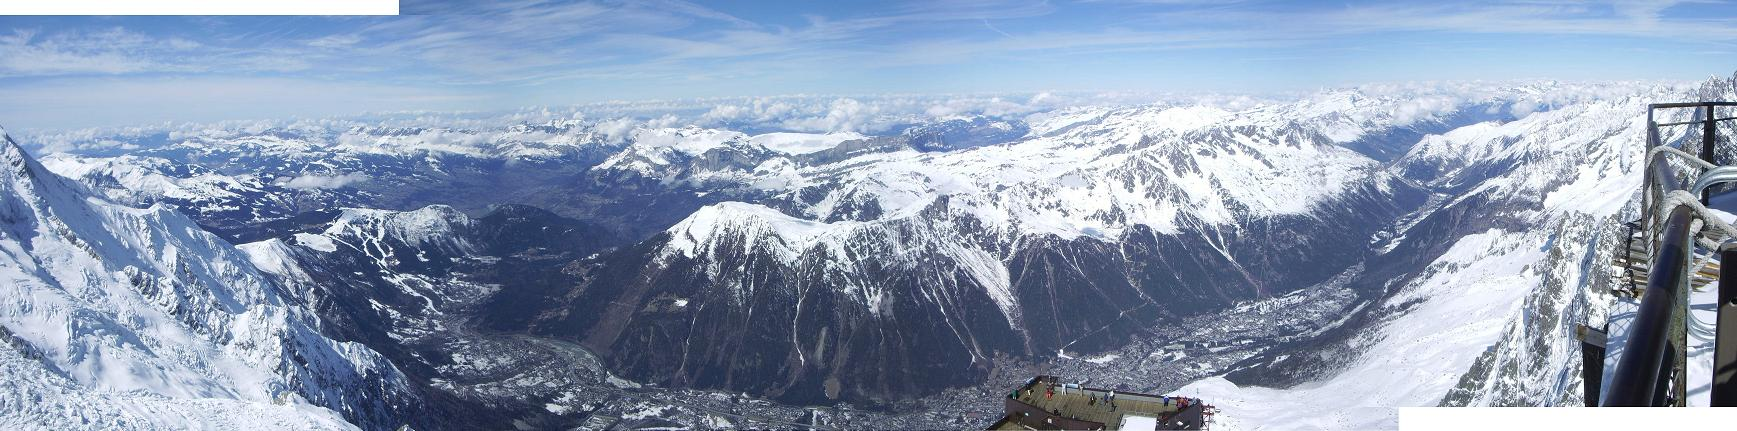 Chamonix_Valley_Panorama